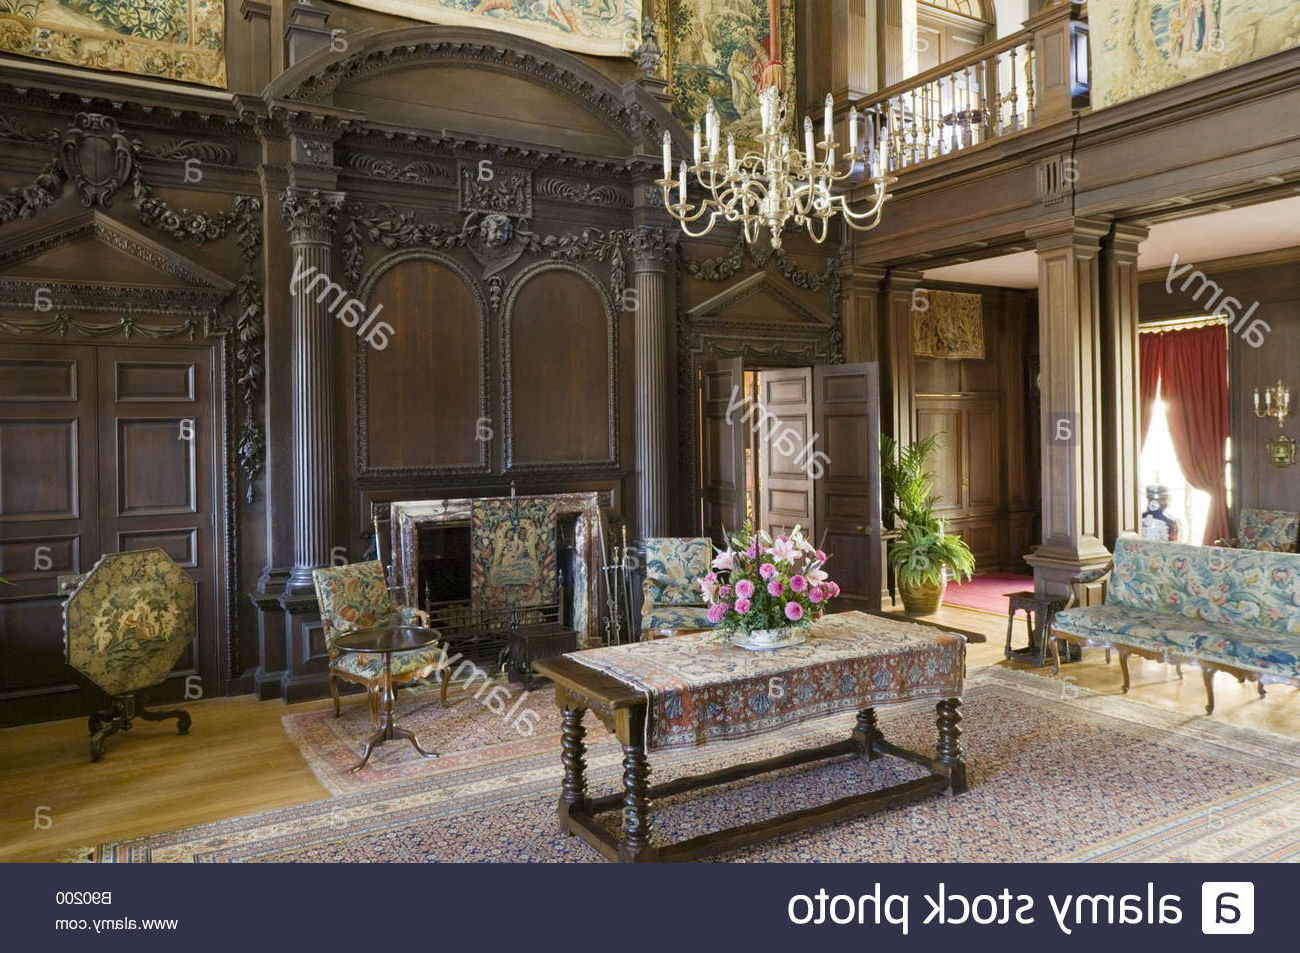 Poynter 3 Piece Drop Leaf Dining Sets Within Fashionable 1903 5 Stock Photos & 1903 5 Stock Images – Alamy (View 15 of 25)